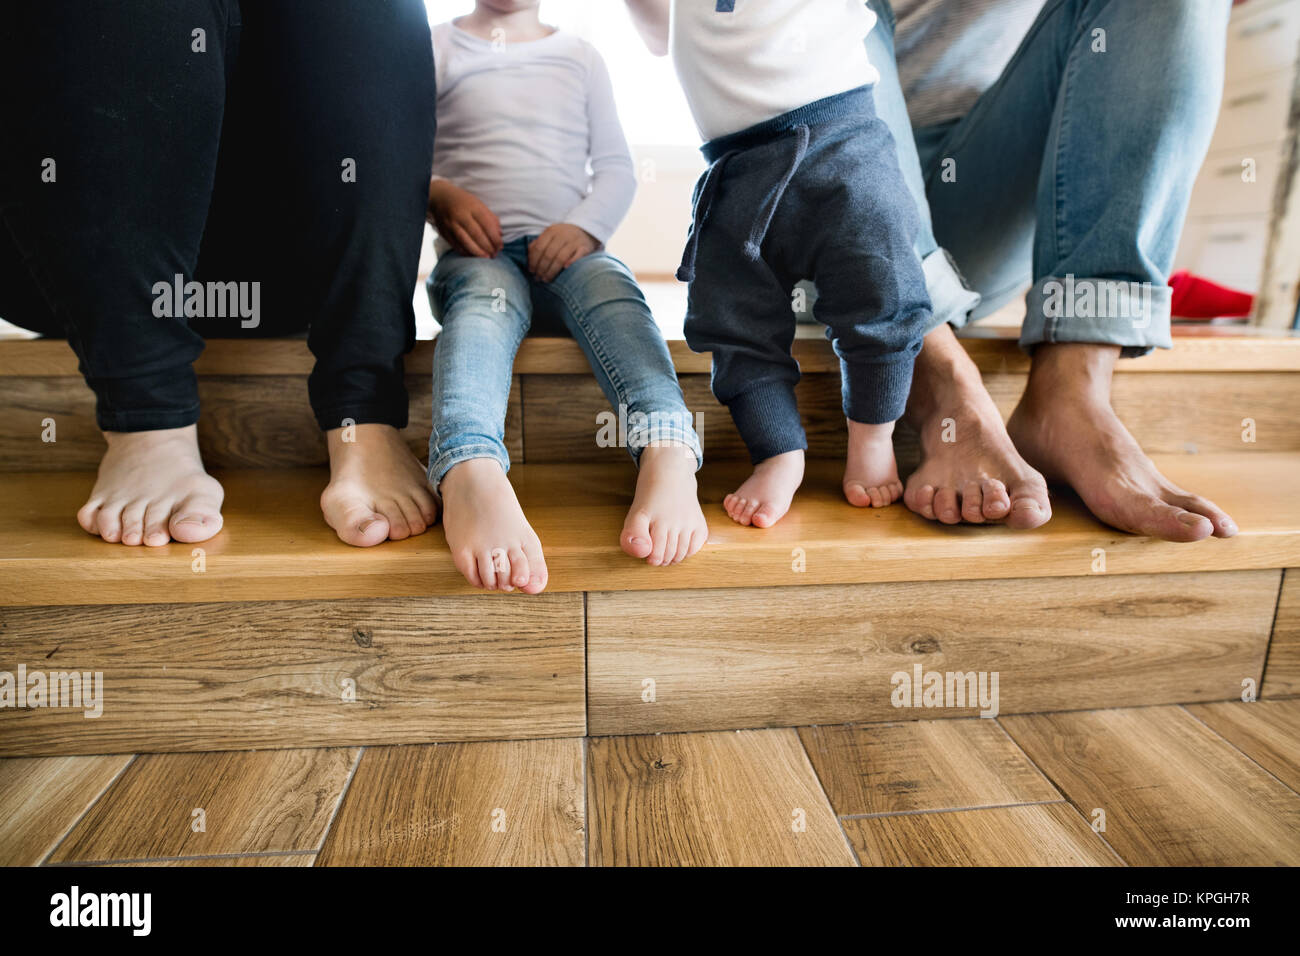 sch ne junge familie nackte f e von mutter vater und kinder stockfoto bild 168780523 alamy. Black Bedroom Furniture Sets. Home Design Ideas